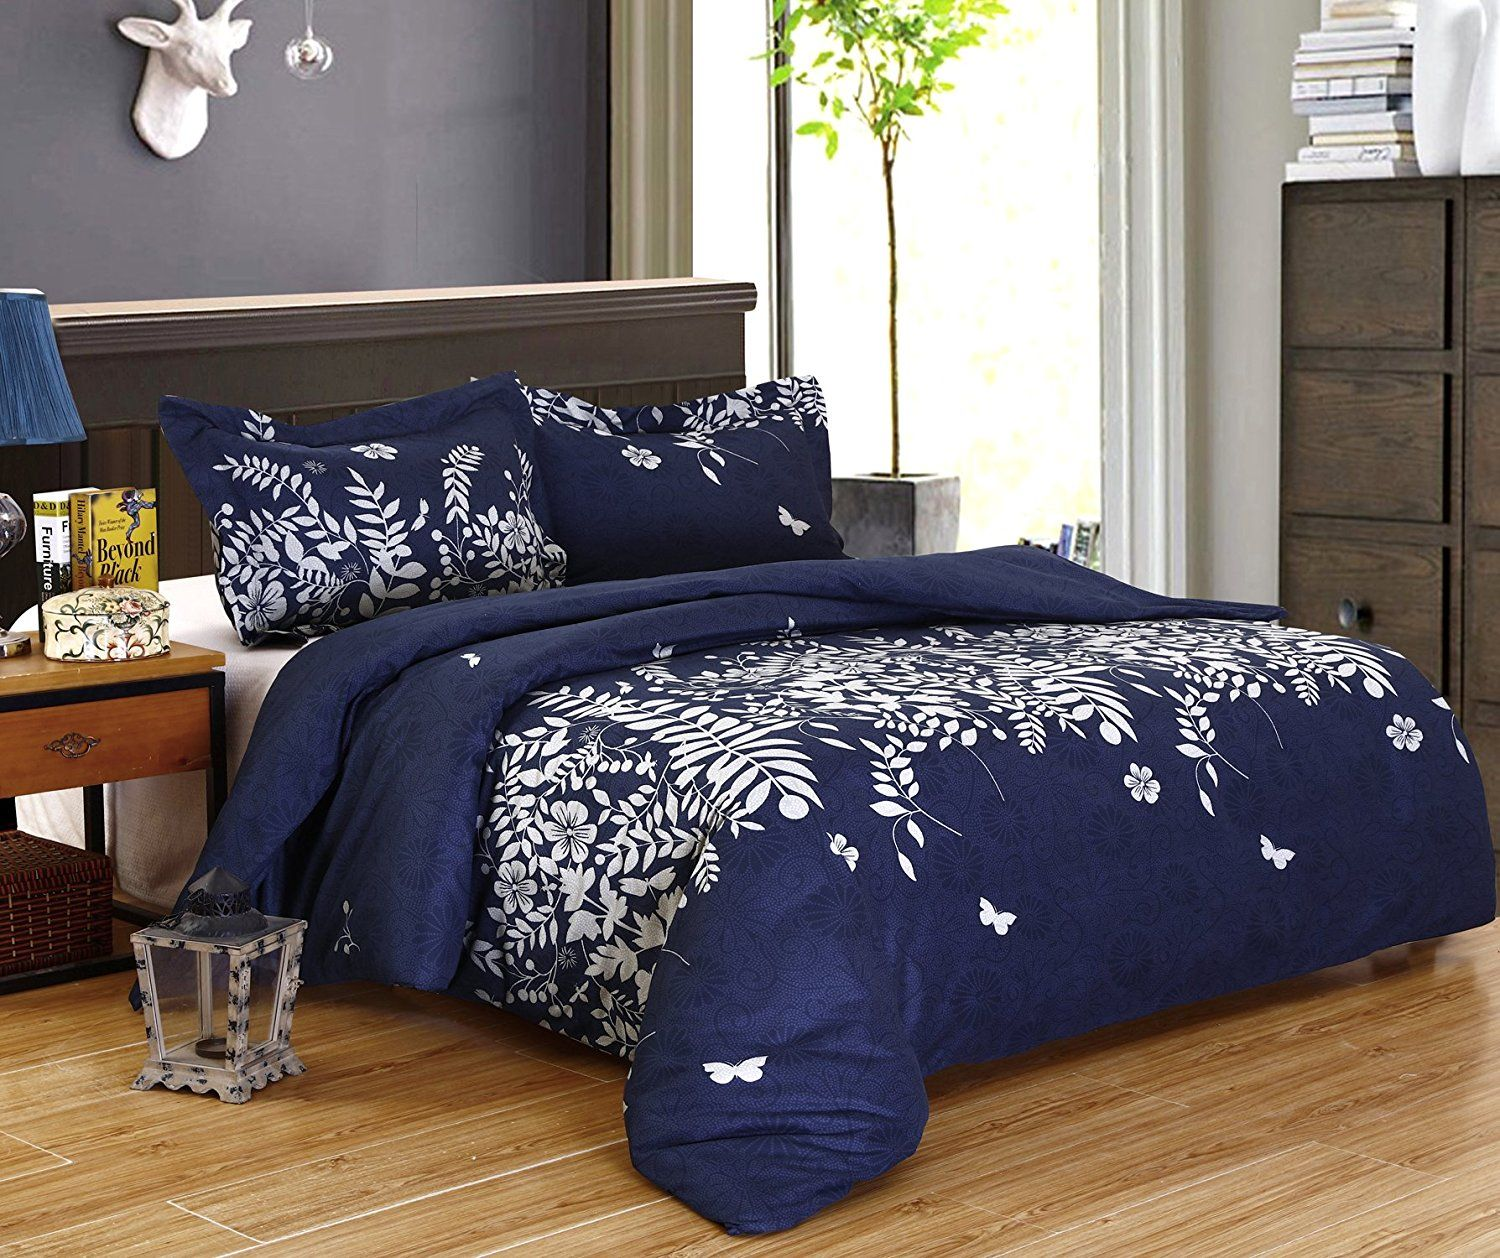 Bamboo Comforters With More | Ease Bedding With Style